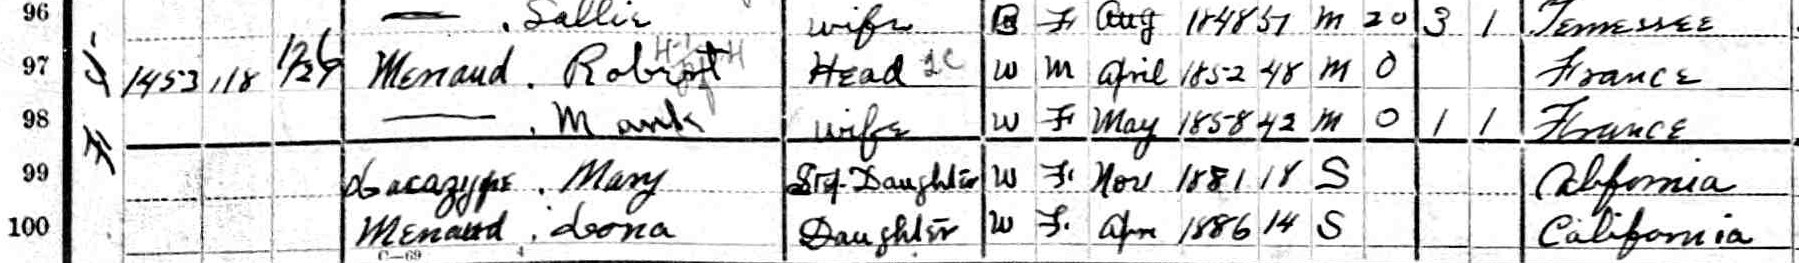 The 1900 Census got the Menaud's all wrong